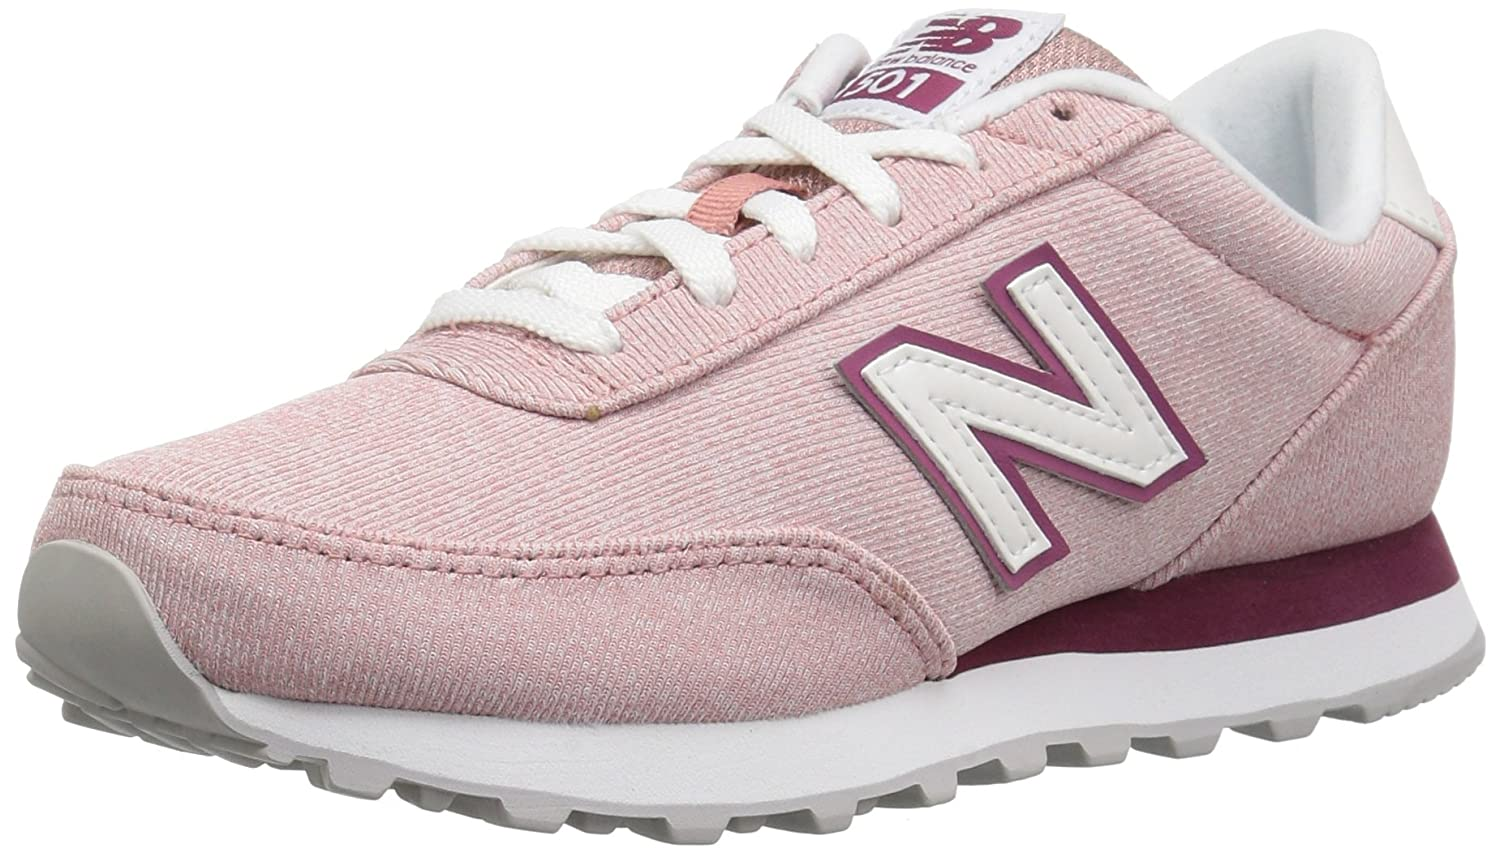 New Balance Women's 501v1 Sneaker B0751PSV2C 9 B(M) US|Dusted Peach/Dragon Fruit